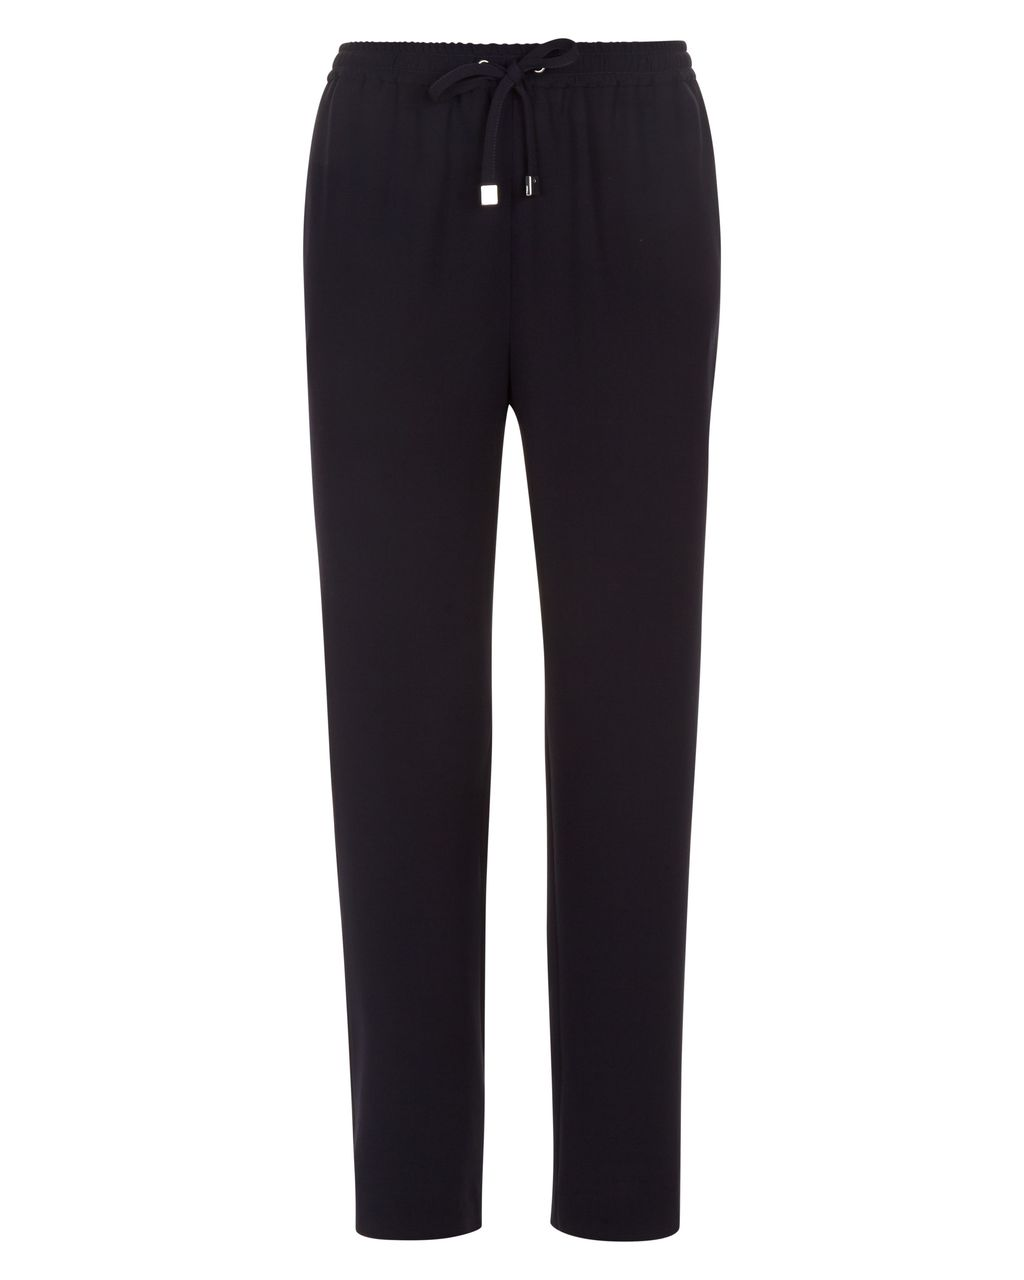 Crepe Drawstring Trousers, Navy - length: standard; pattern: plain; style: peg leg; waist detail: belted waist/tie at waist/drawstring; waist: mid/regular rise; predominant colour: navy; fibres: polyester/polyamide - 100%; texture group: crepes; fit: tapered; pattern type: fabric; occasions: creative work; season: s/s 2016; wardrobe: basic